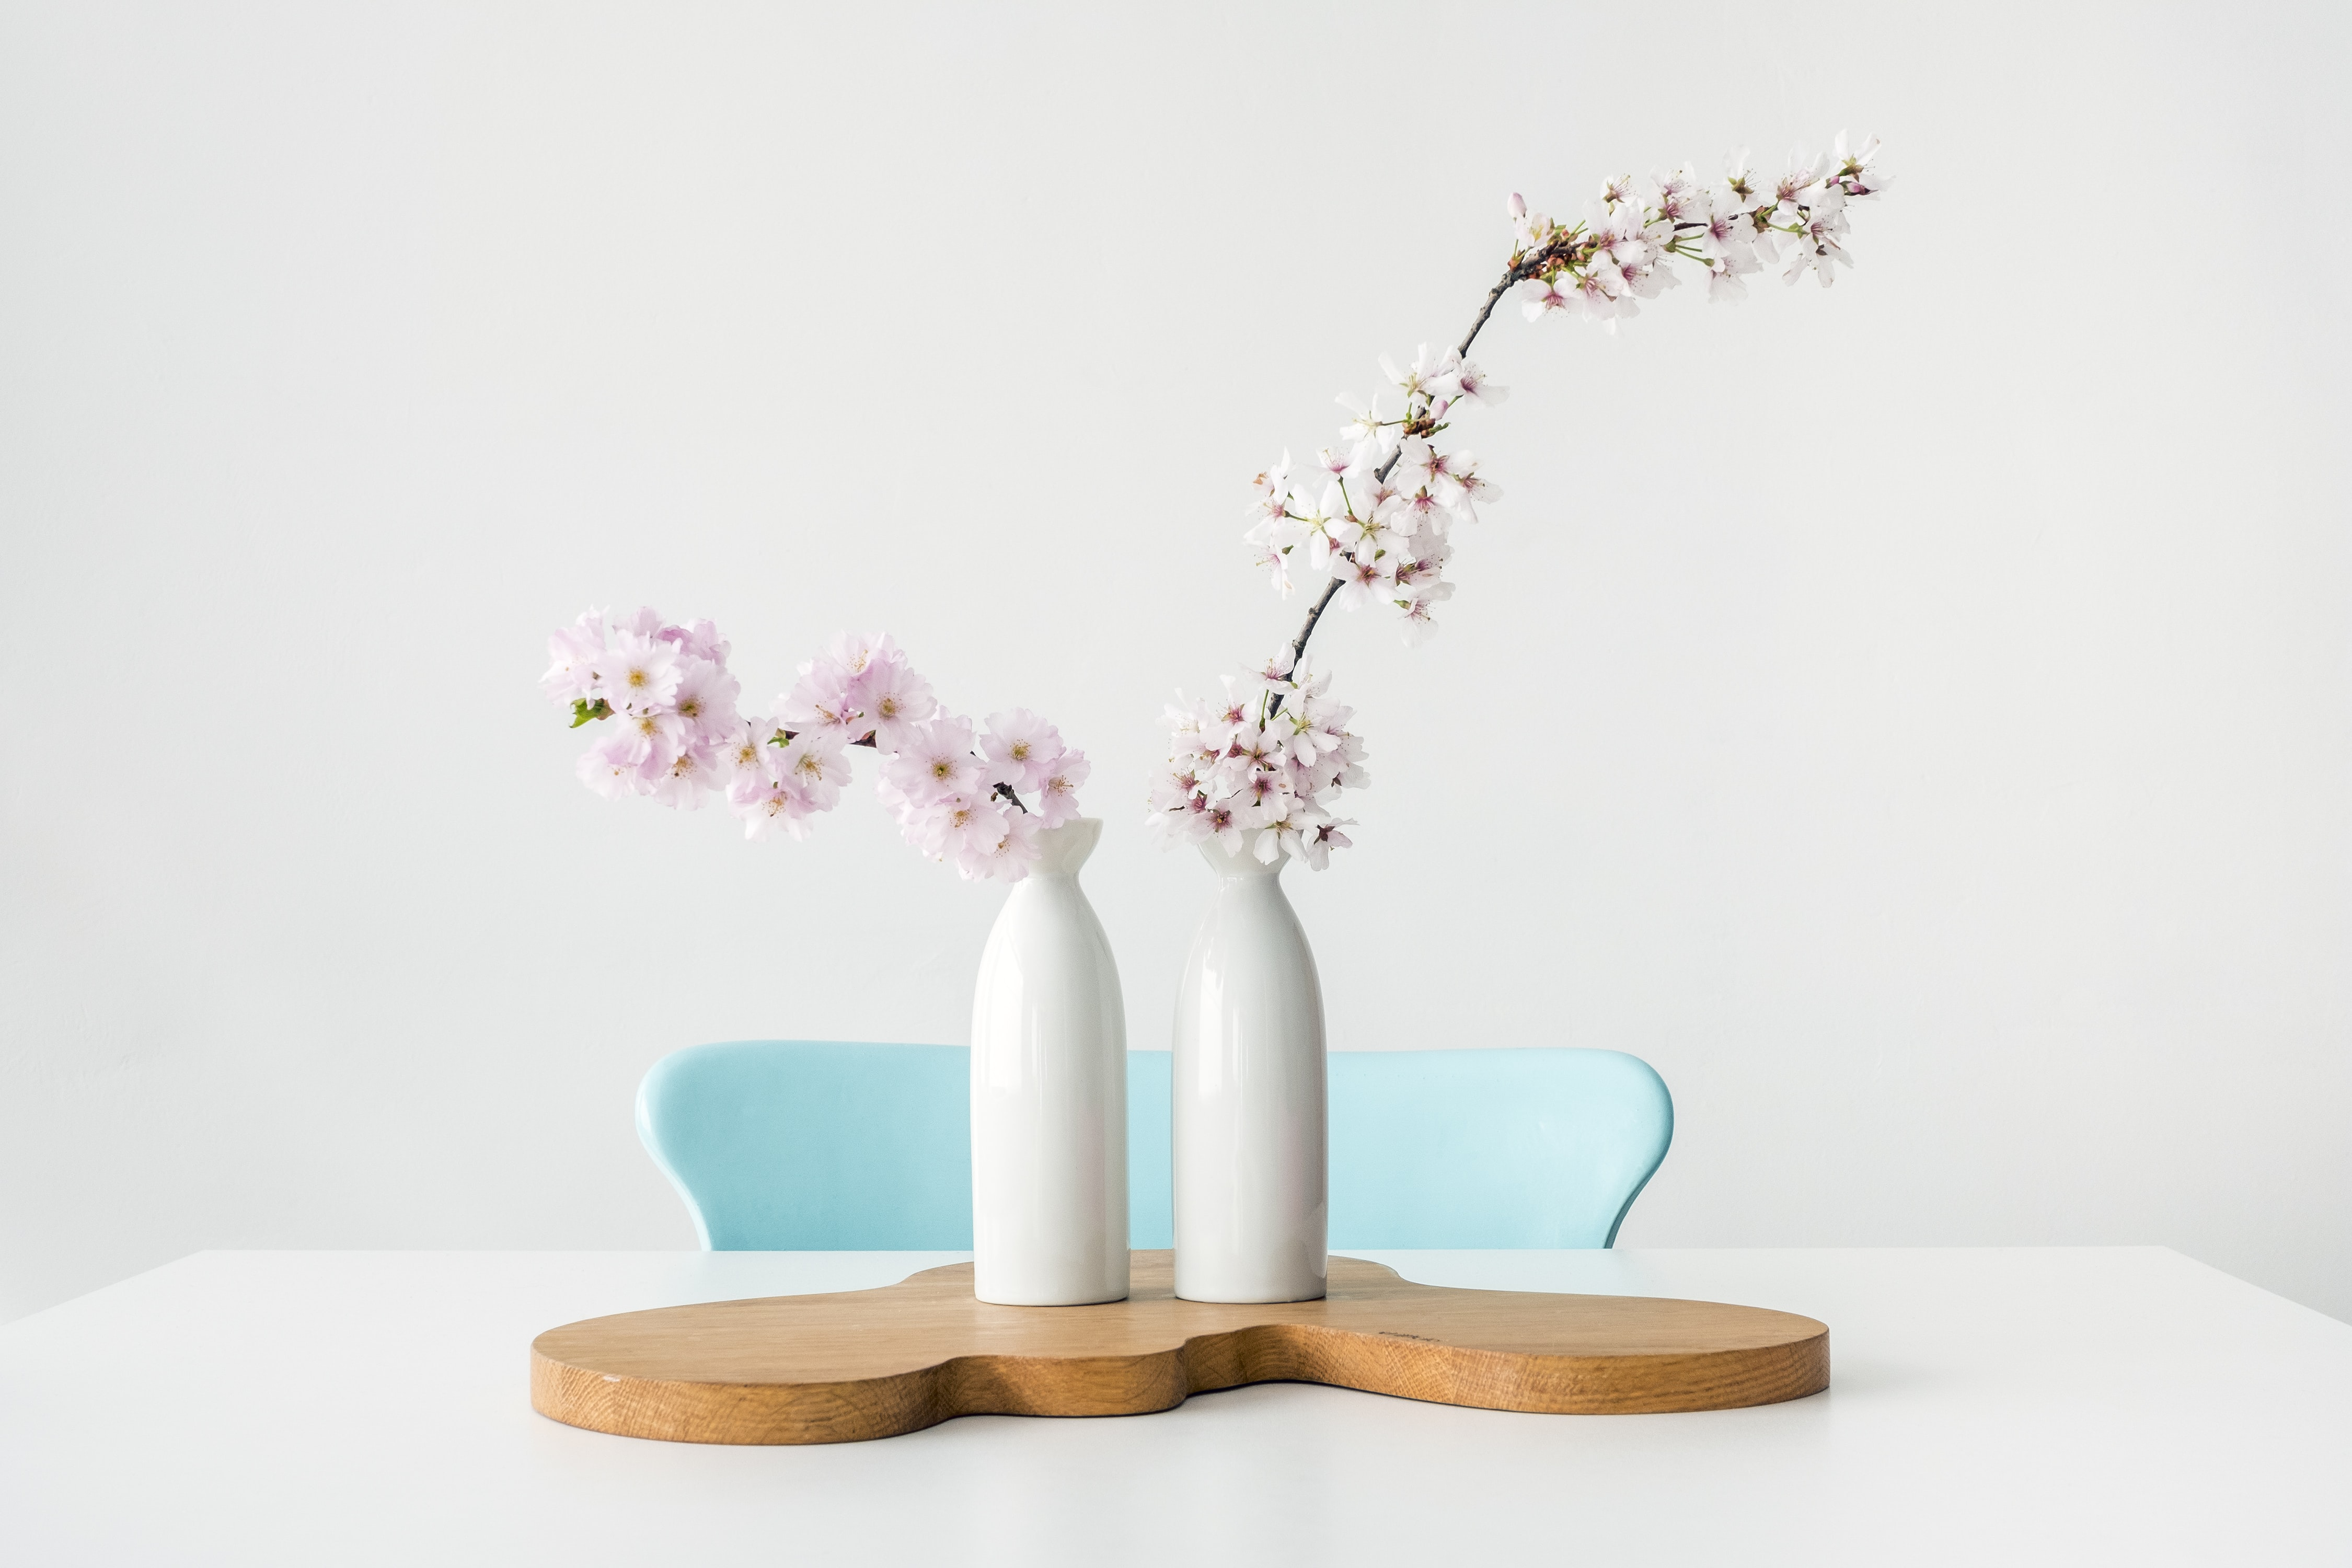 Two white vases with pink and white blossom branches on a table